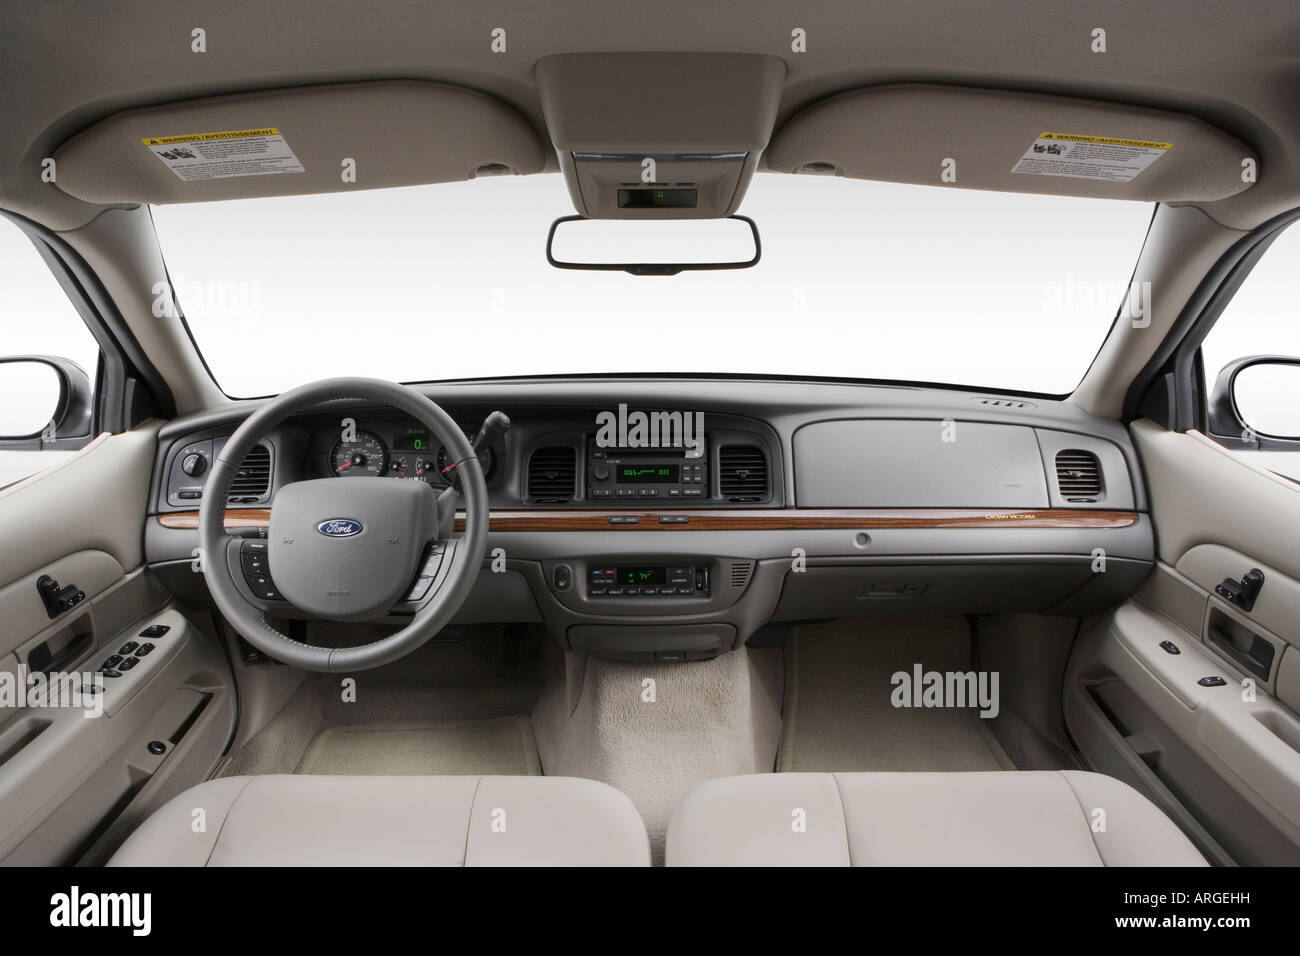 2007 ford crown victoria lx in silver dashboard center. Black Bedroom Furniture Sets. Home Design Ideas